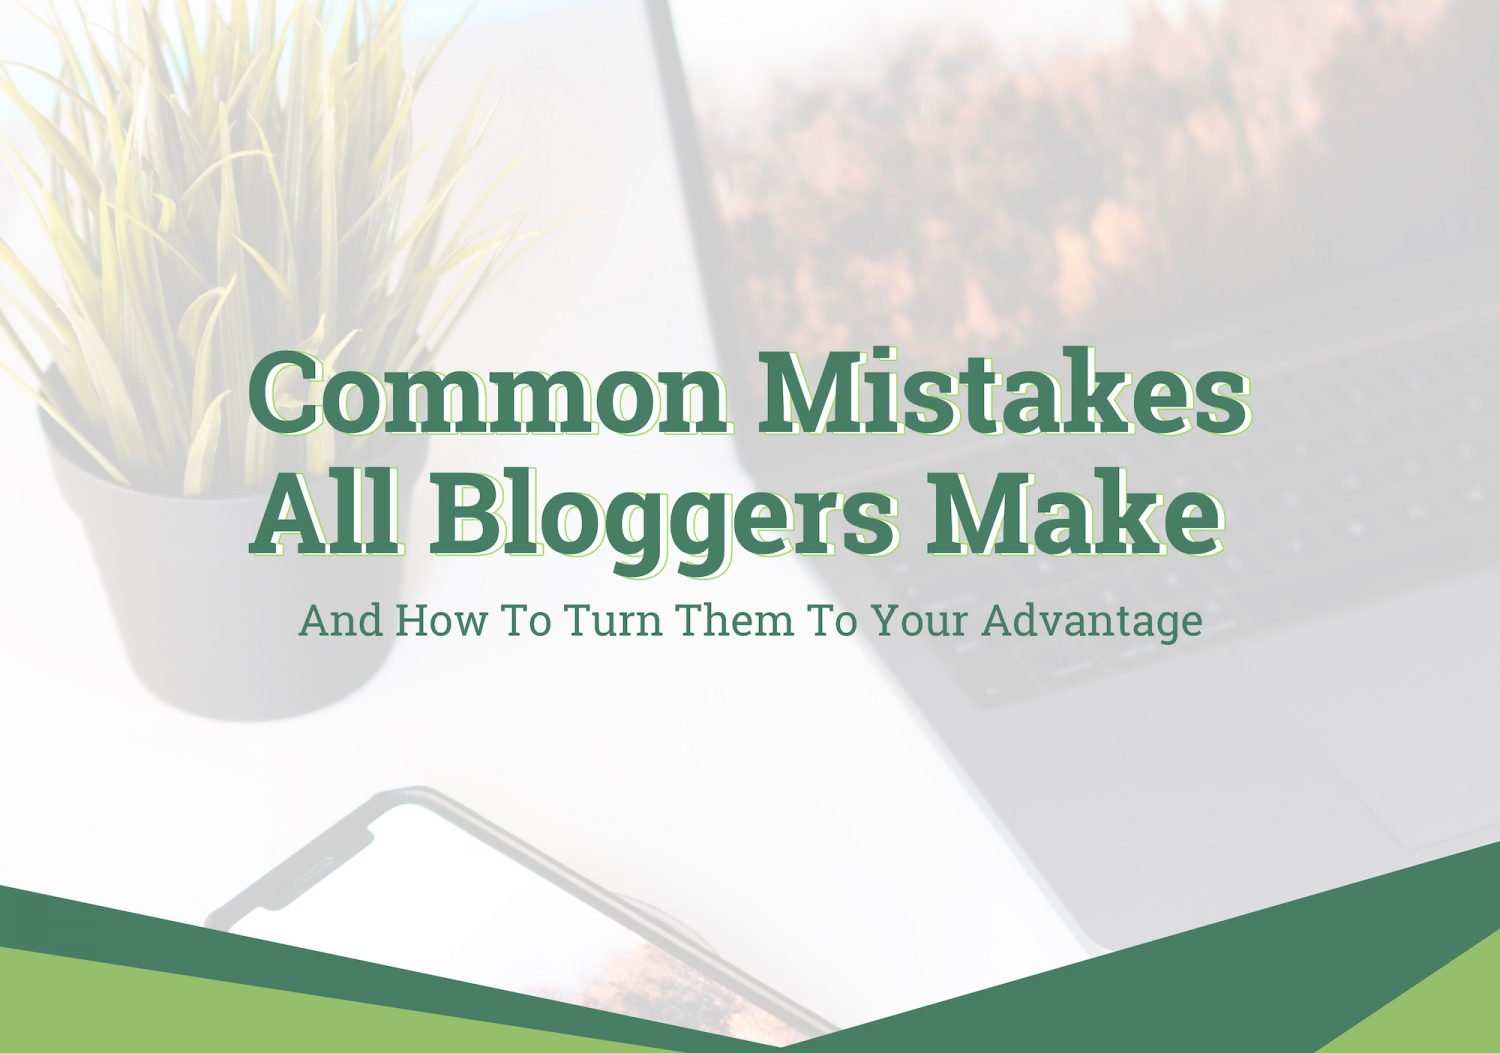 Common Mistakes All Bloggers Make And How To Turn Them To Your Advantage Expio Digital Marketing Blogging